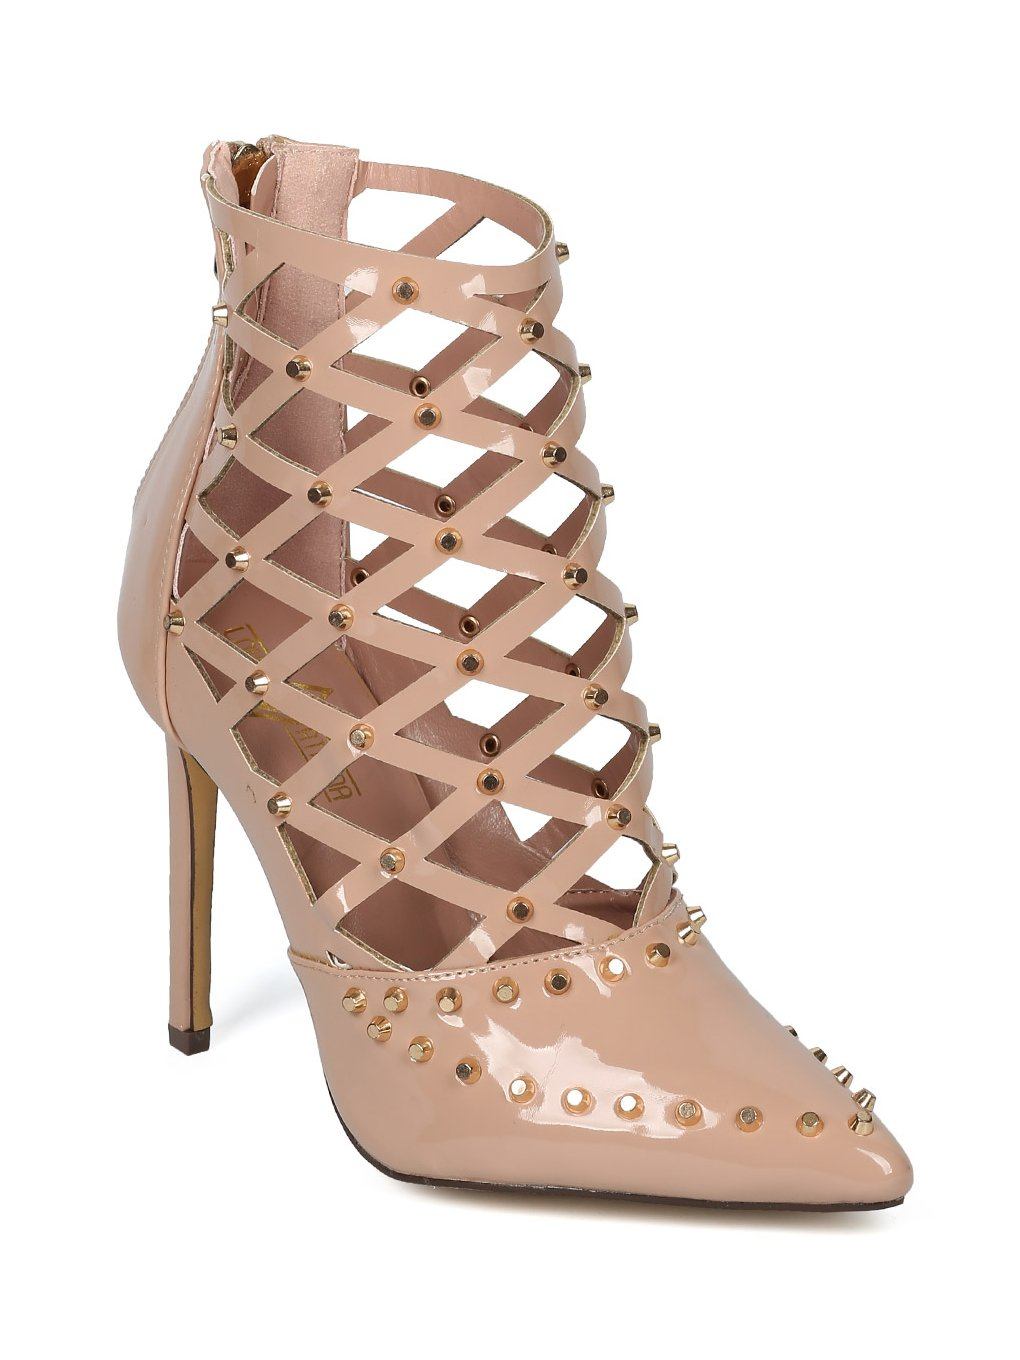 Alrisco Women Studded Pointy Toe Caged Cut Out Stiletto Bootie Pump HF45 - Nude Patent (Size: 6.0)